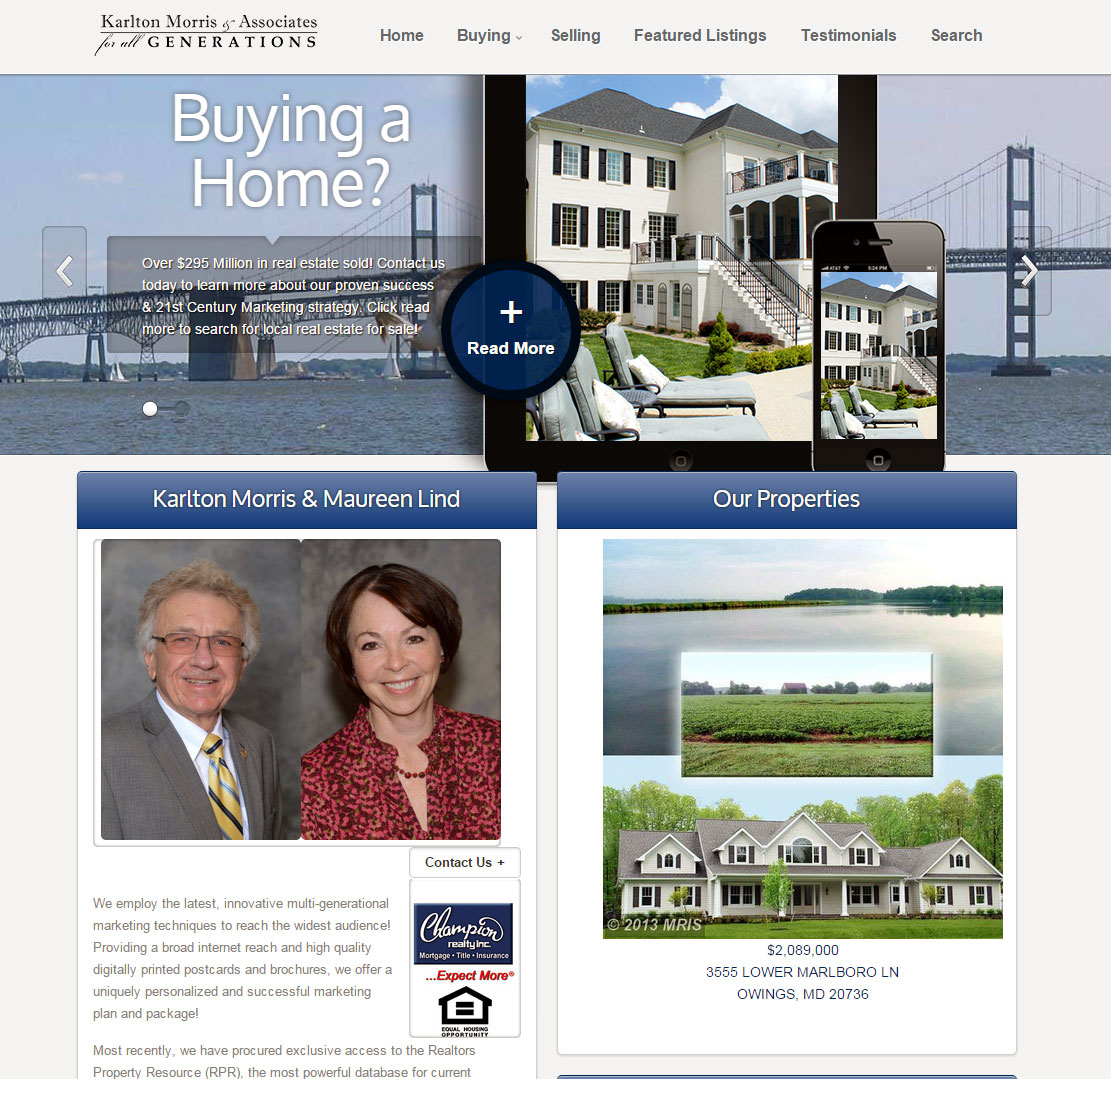 Karlton Morris & Associates Real Estate Website Design, Annapolis, Maryland